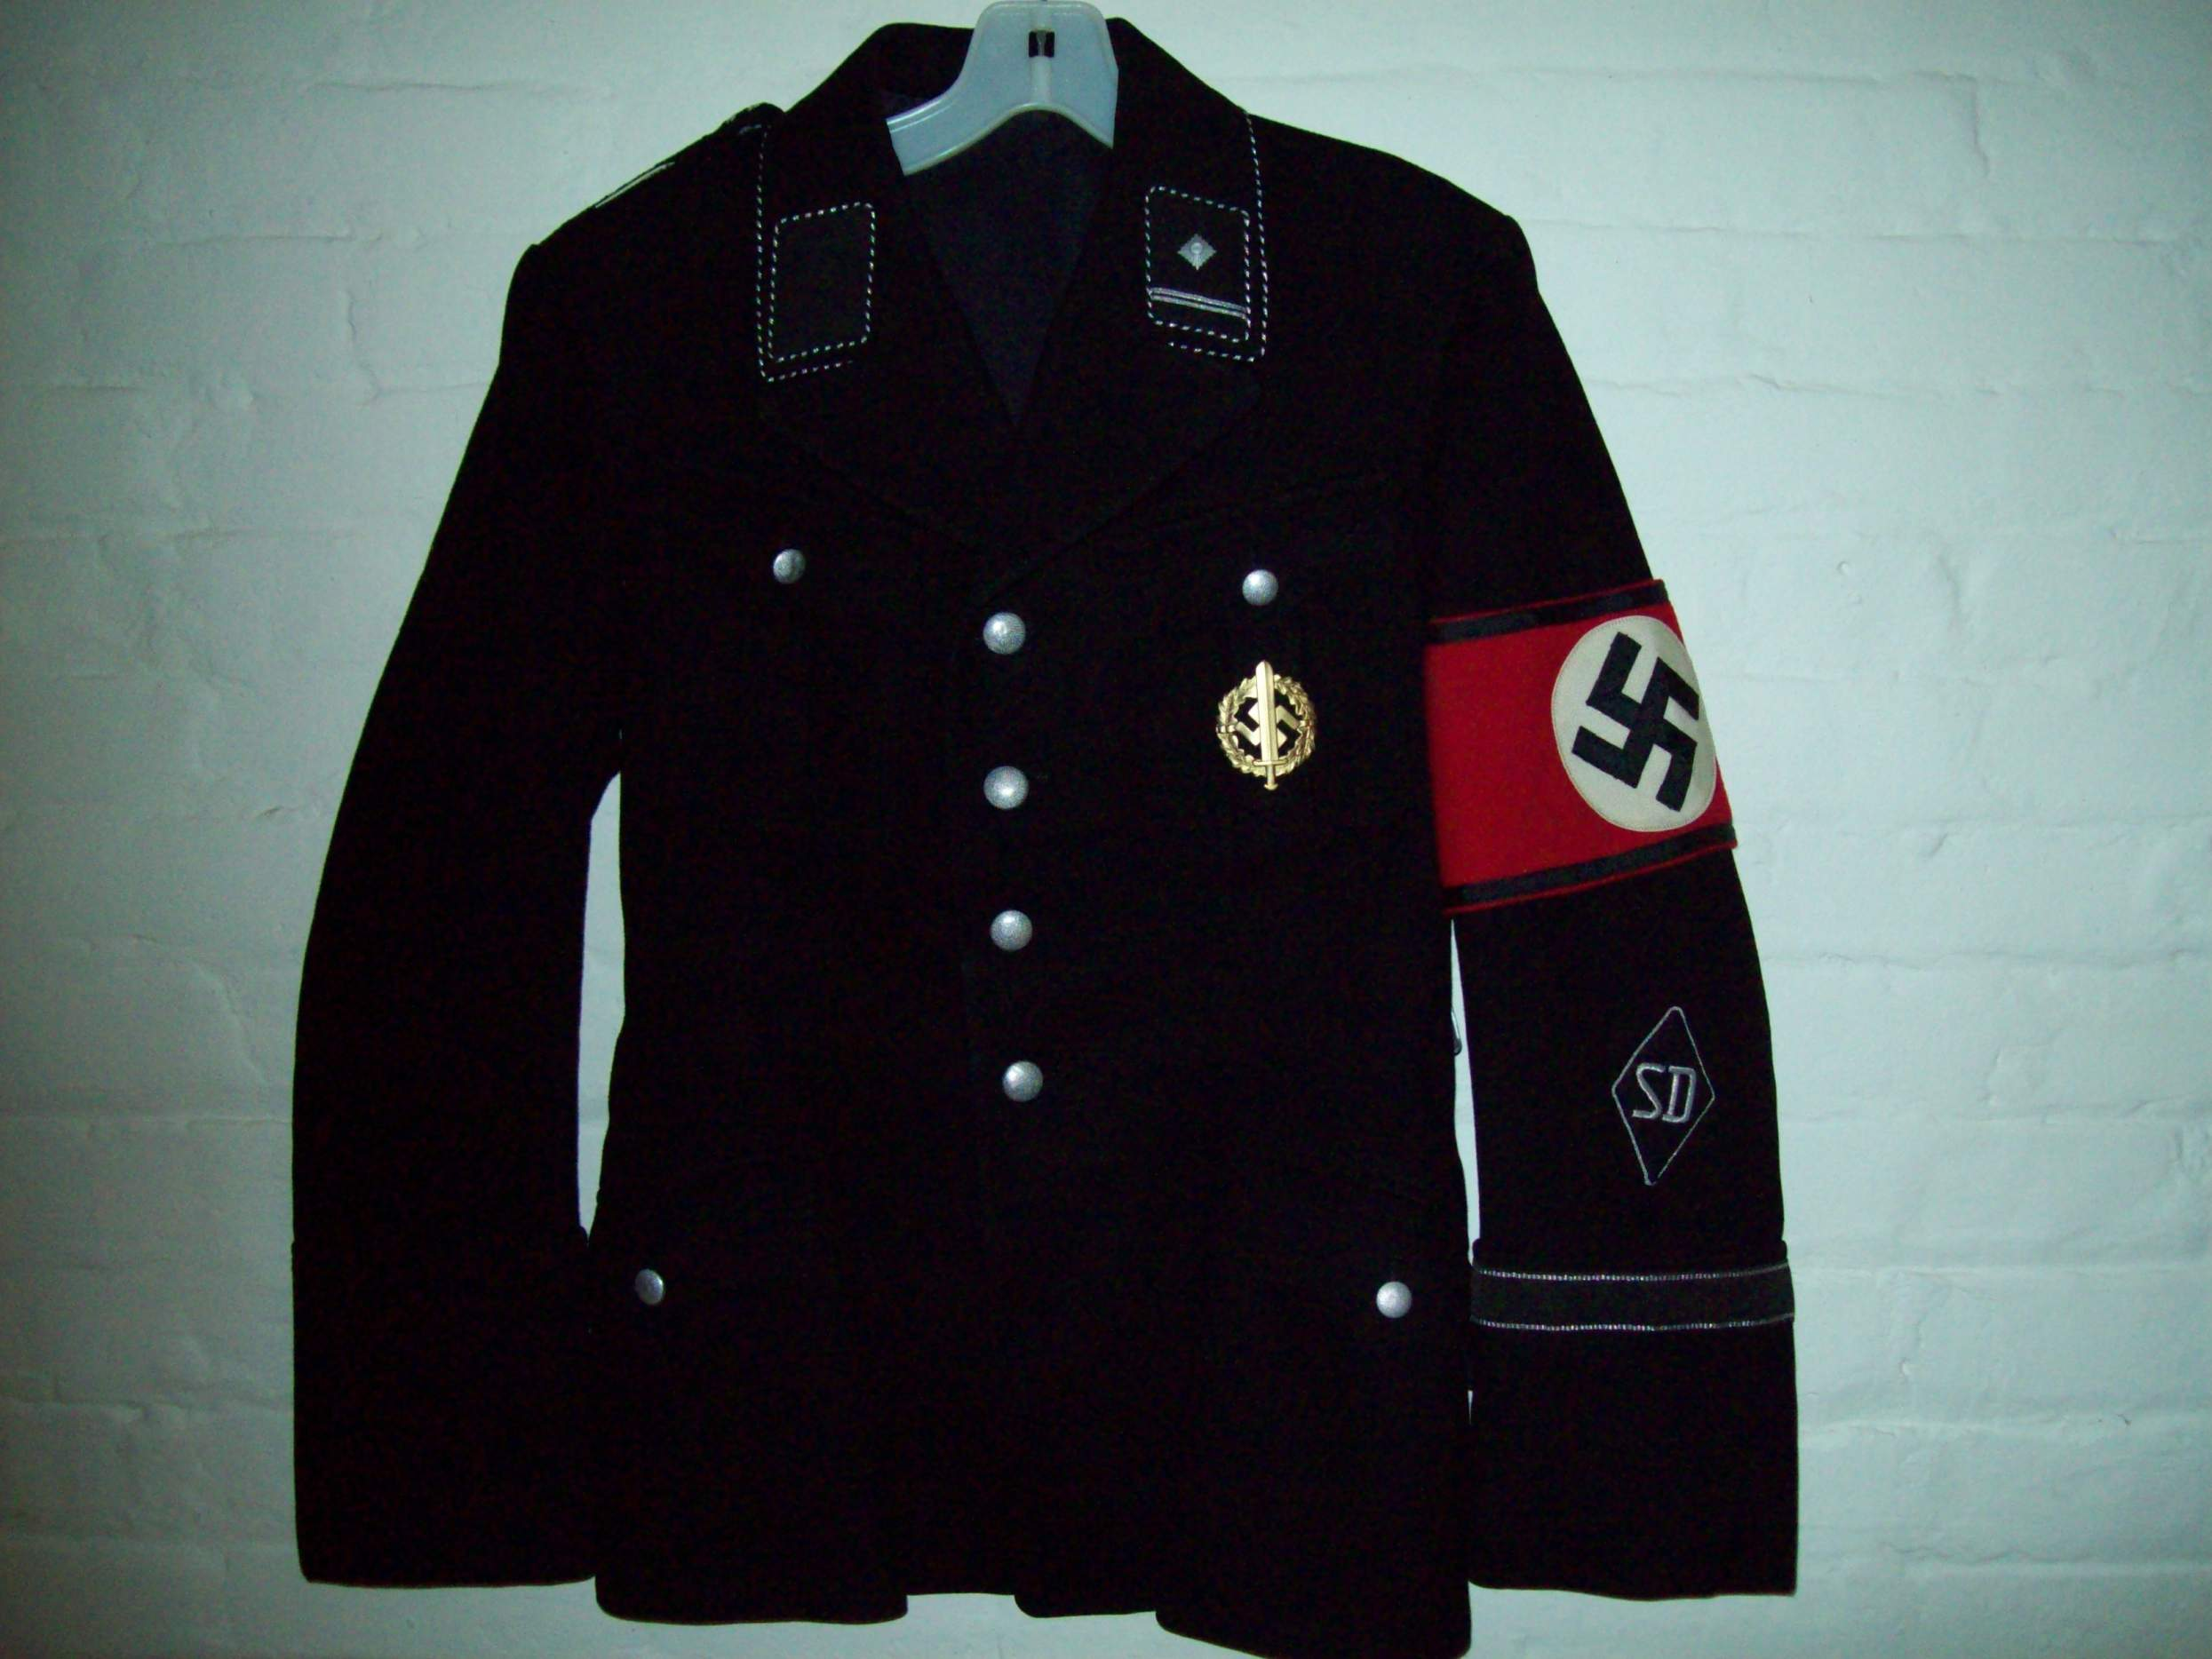 Image result for gestapo uniforms images